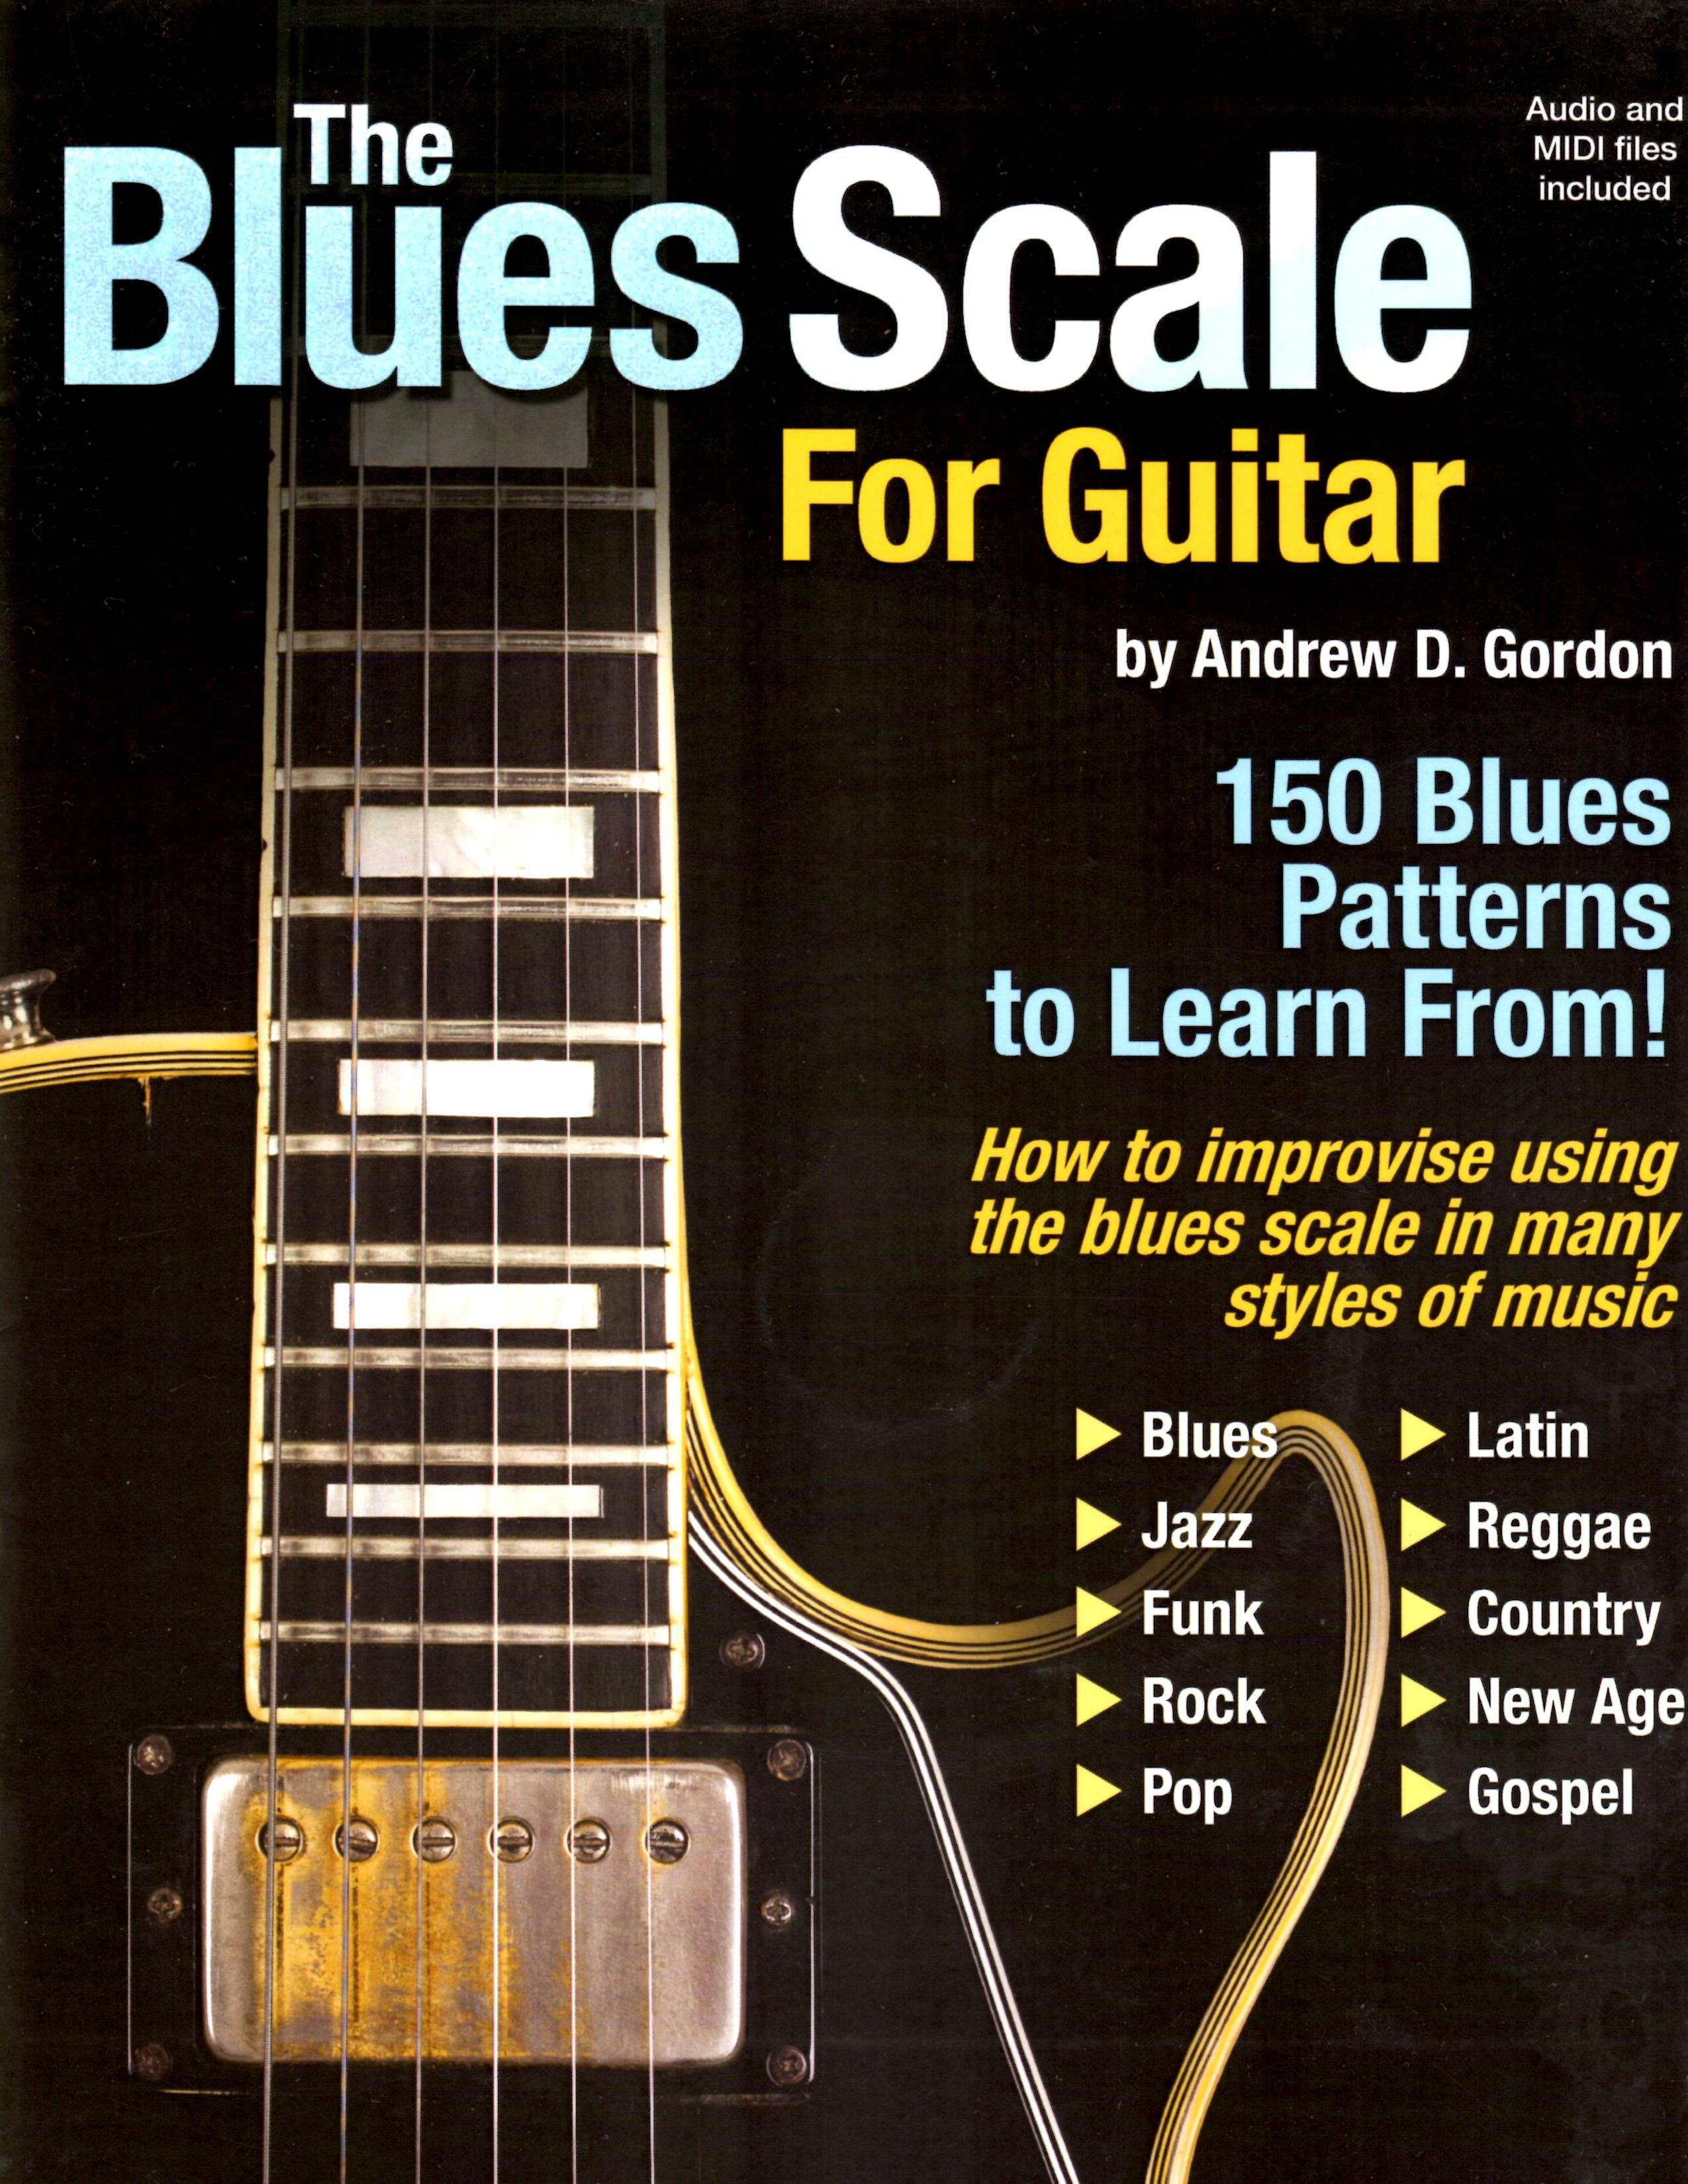 The Blues Scale for Guitar MIDI files